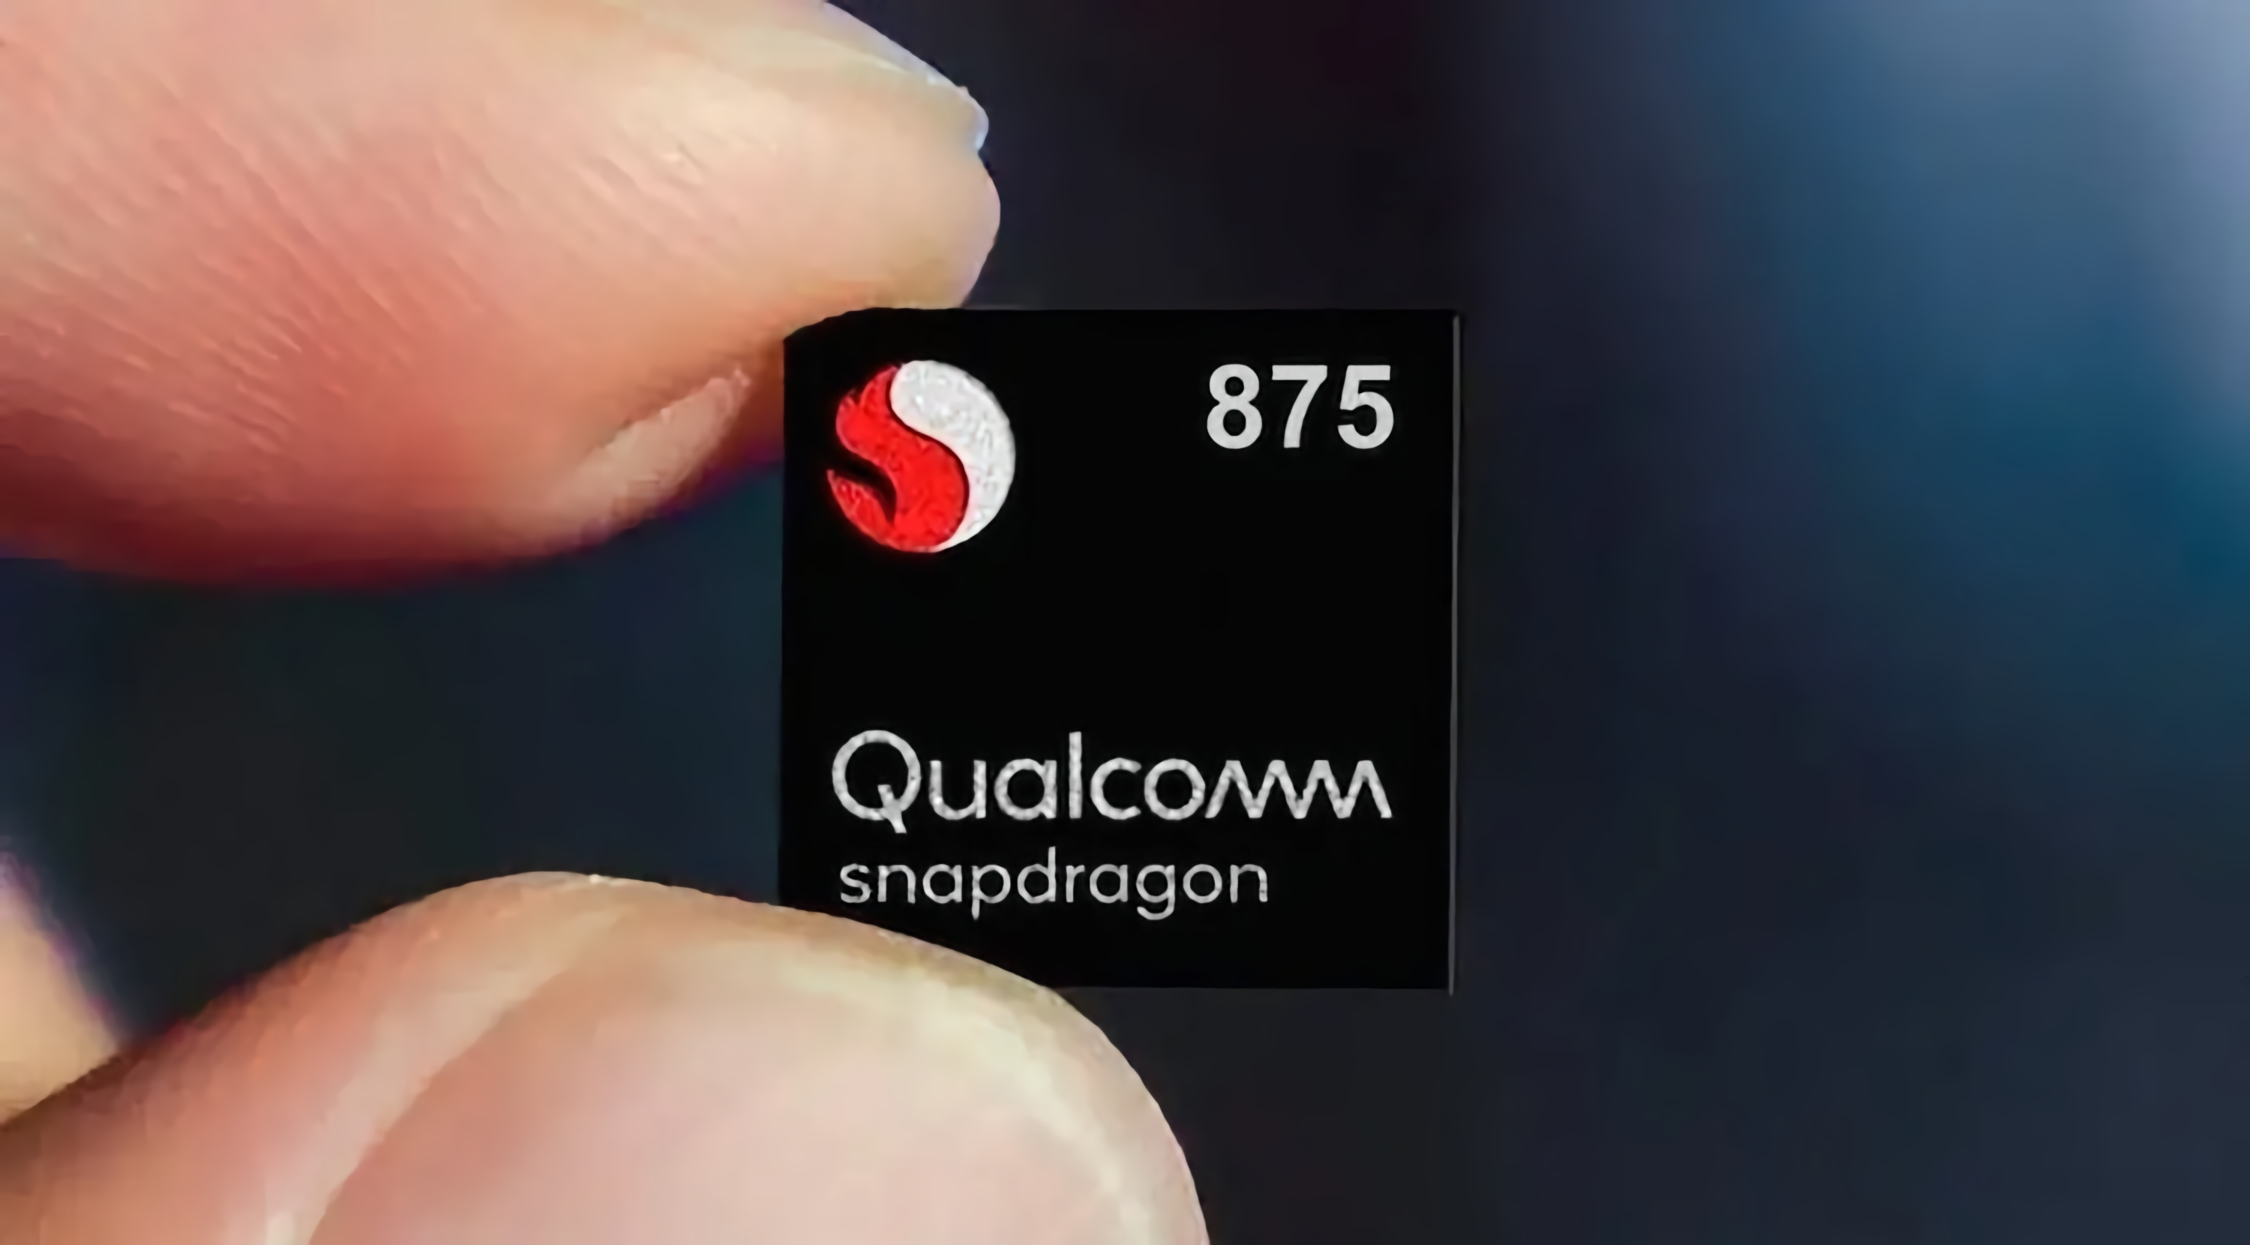 В сеть слили подробные спецификации флагманского чипа Qualcomm Snapdragon 875